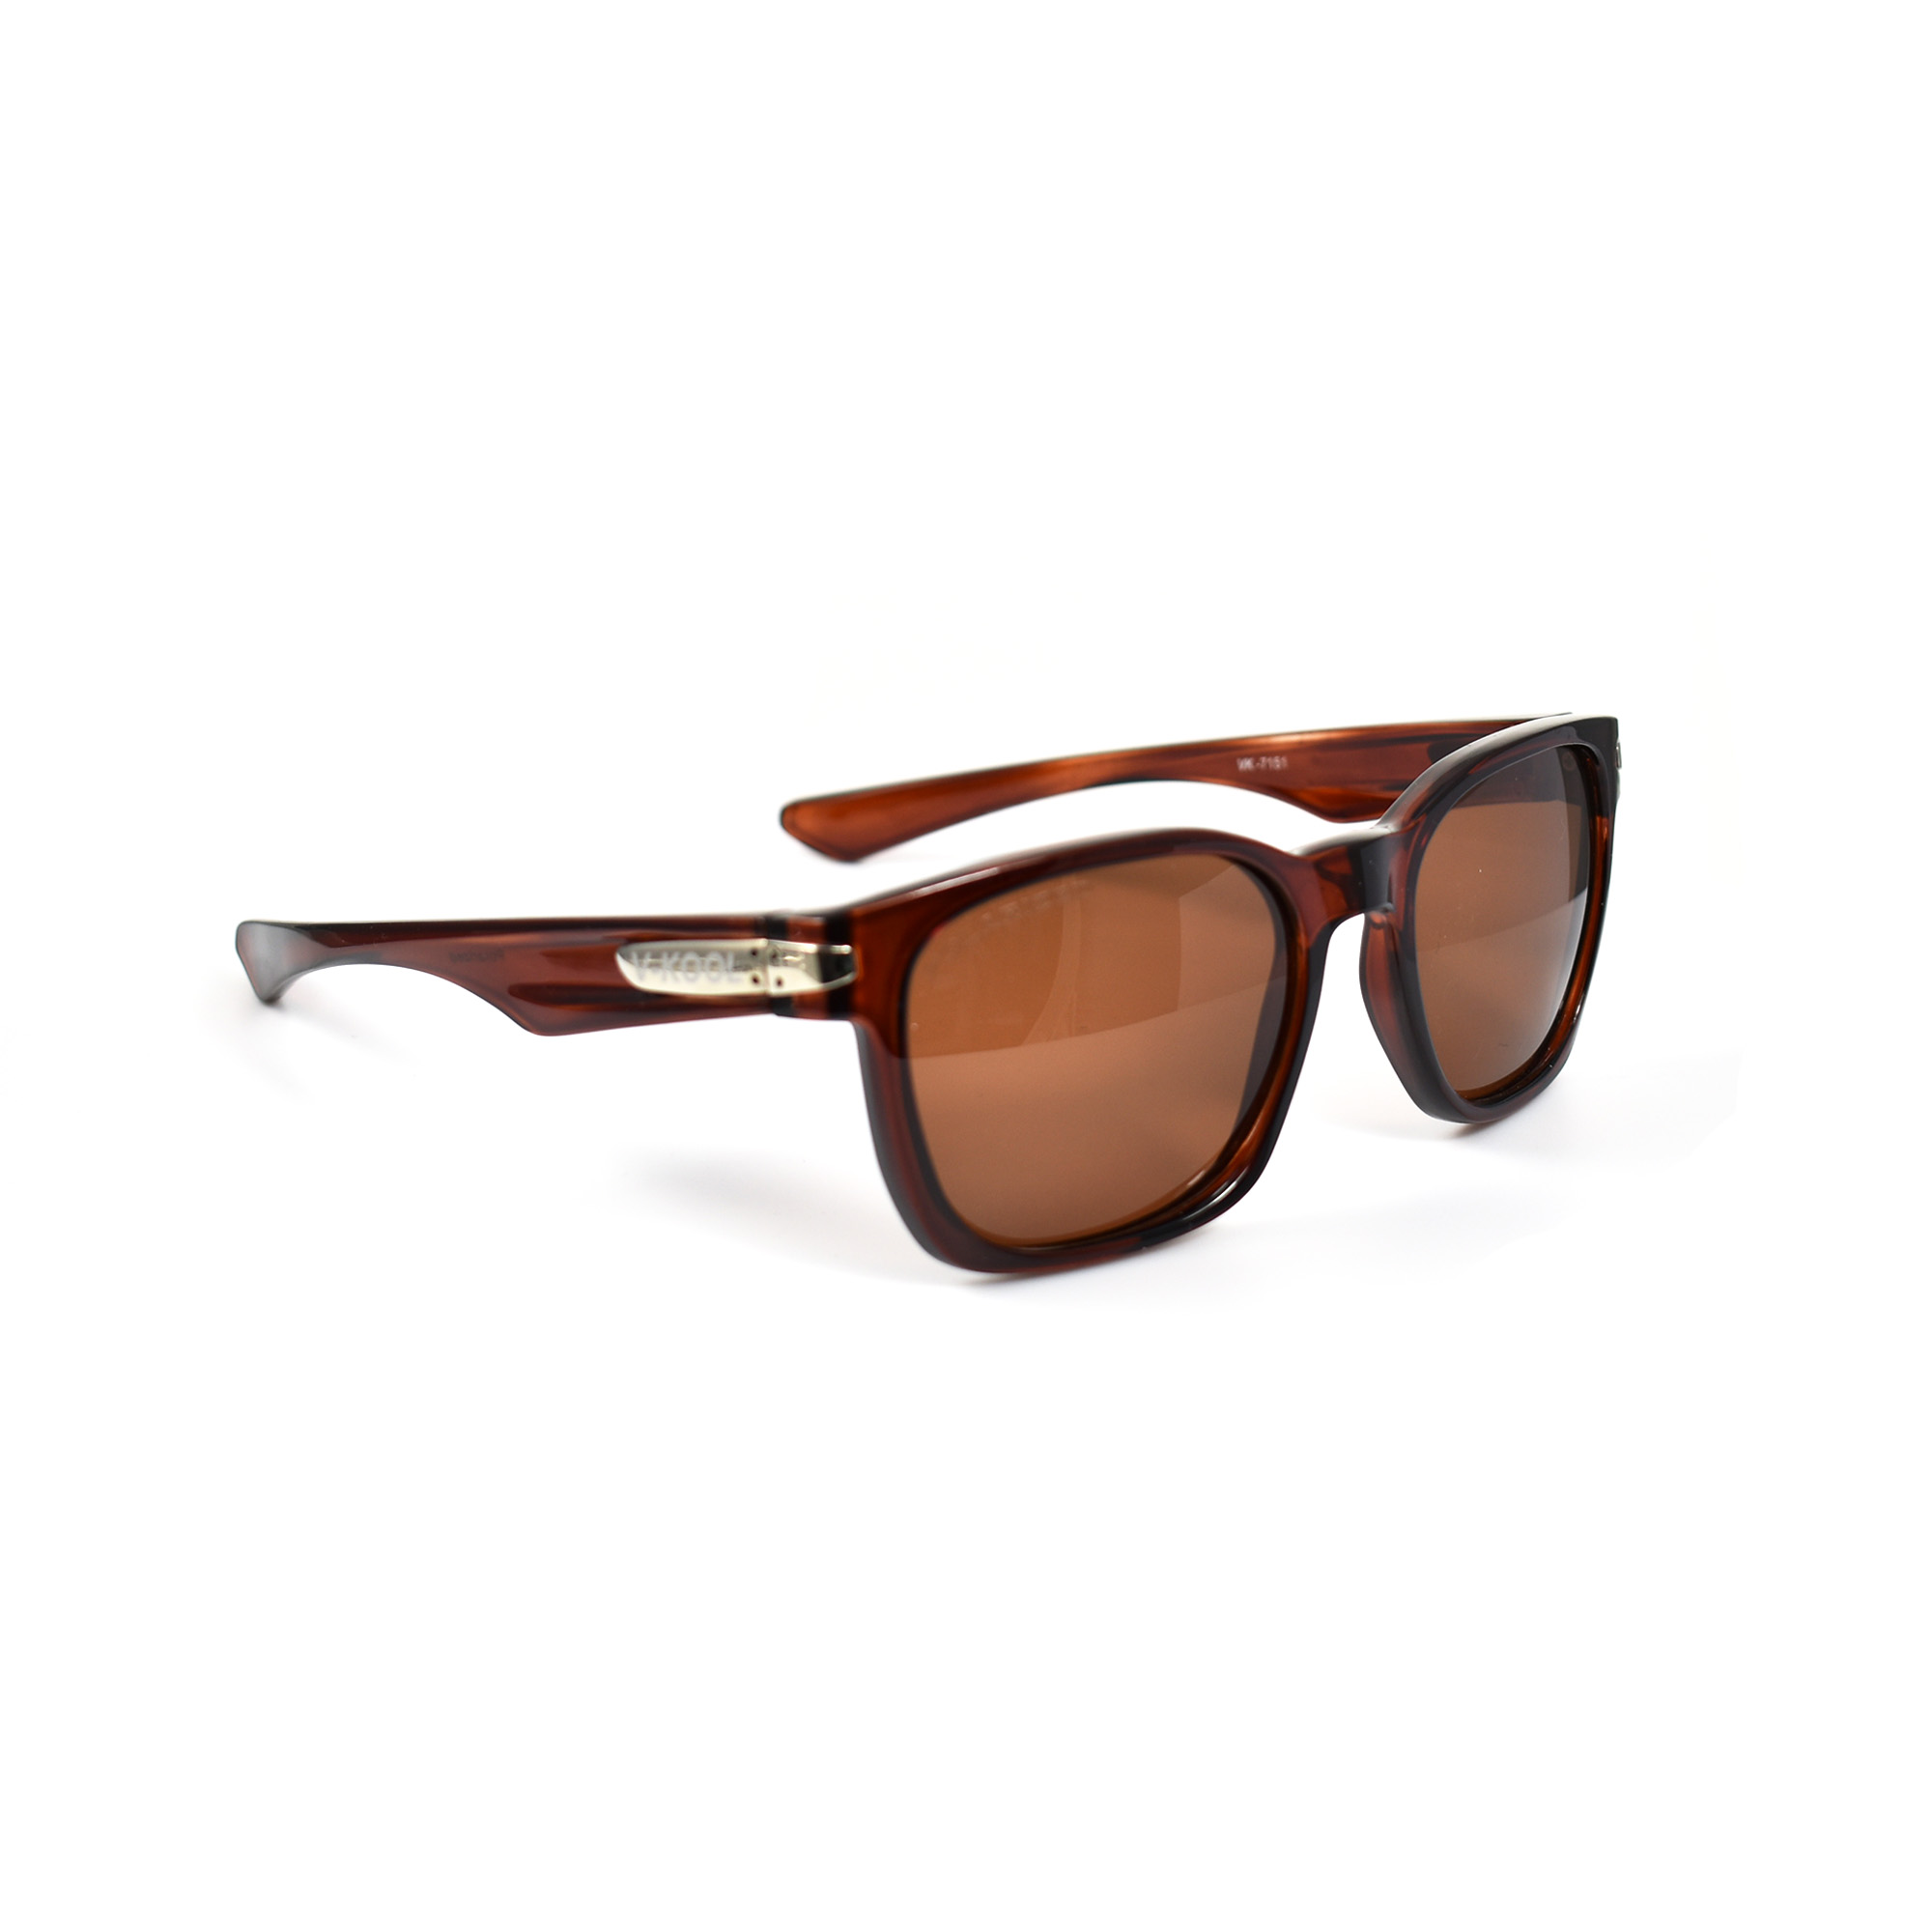 Verrill Brown Polarized Sunglasses